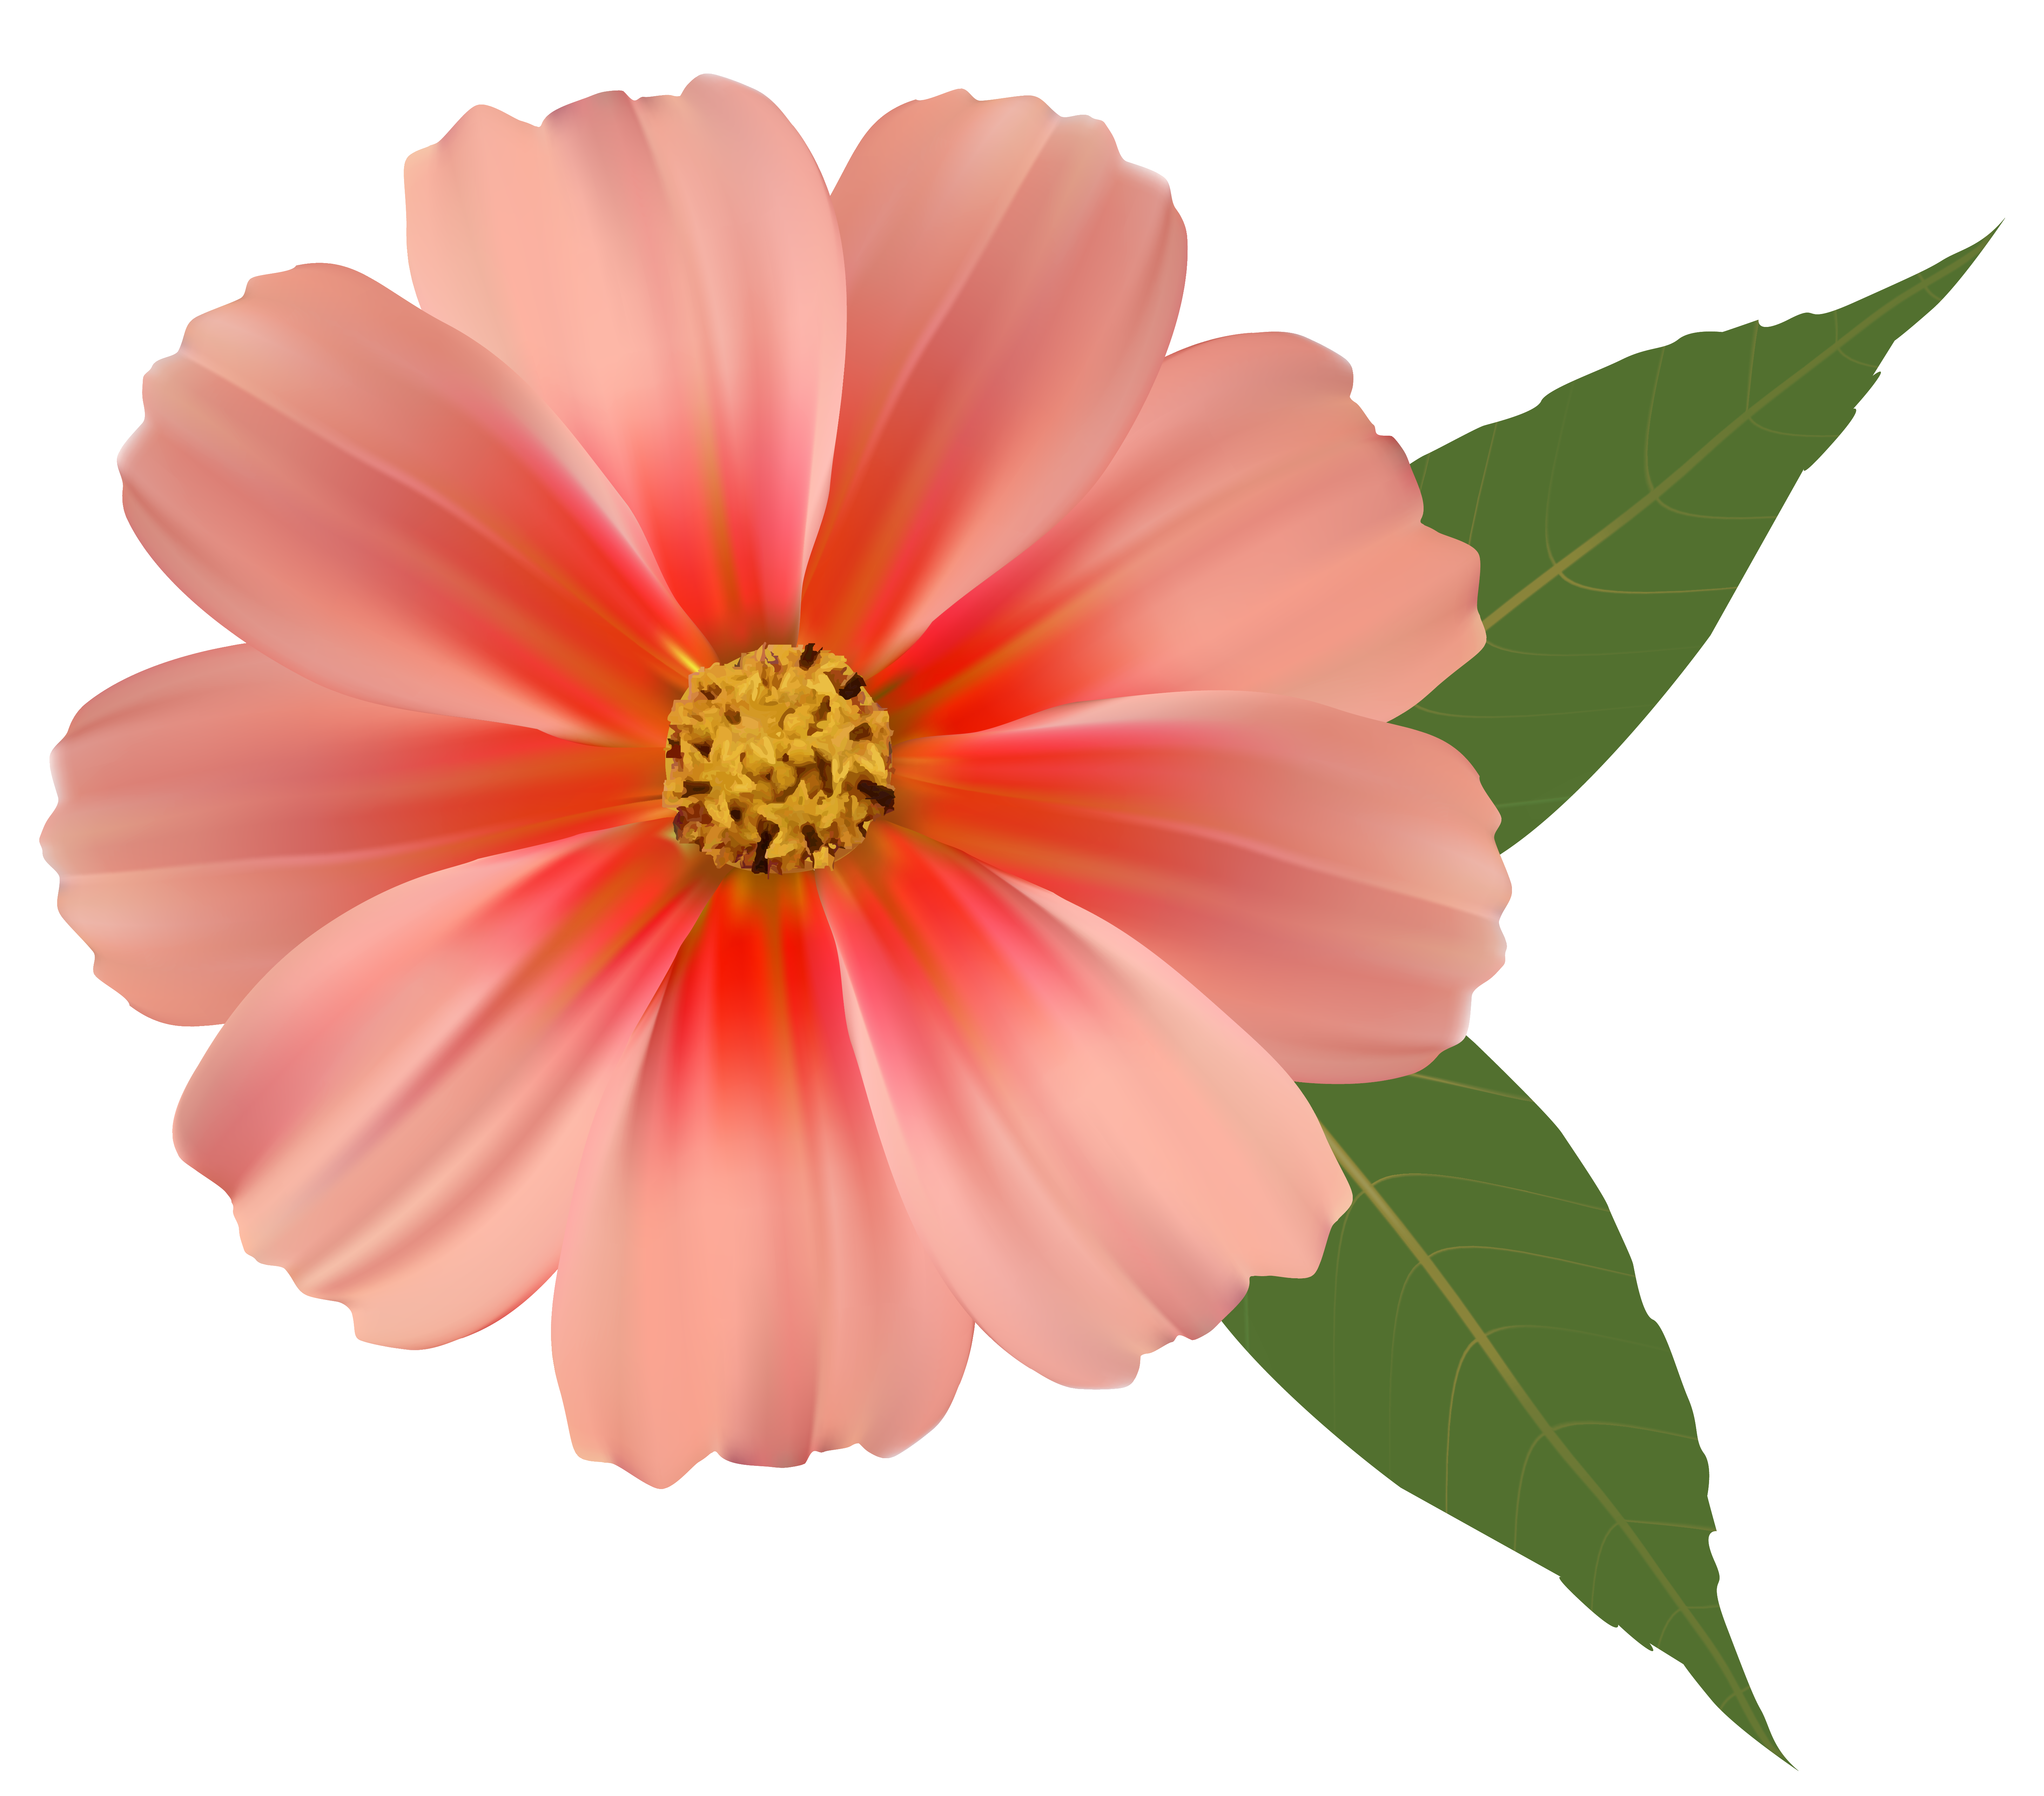 Single flower png. Orange image clipart gallery